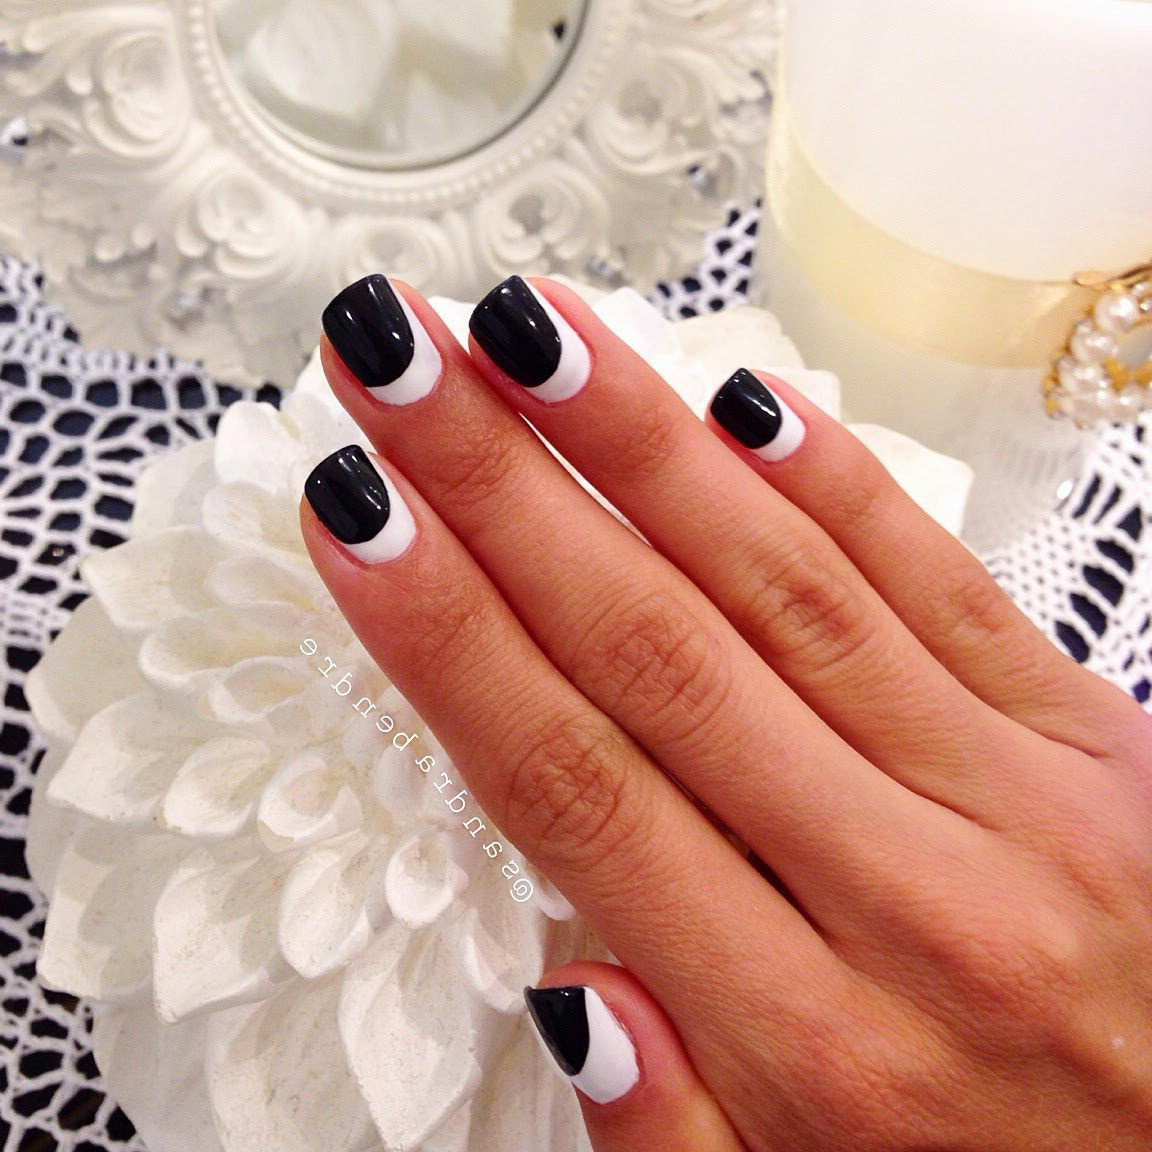 Two-Toned white and black nails